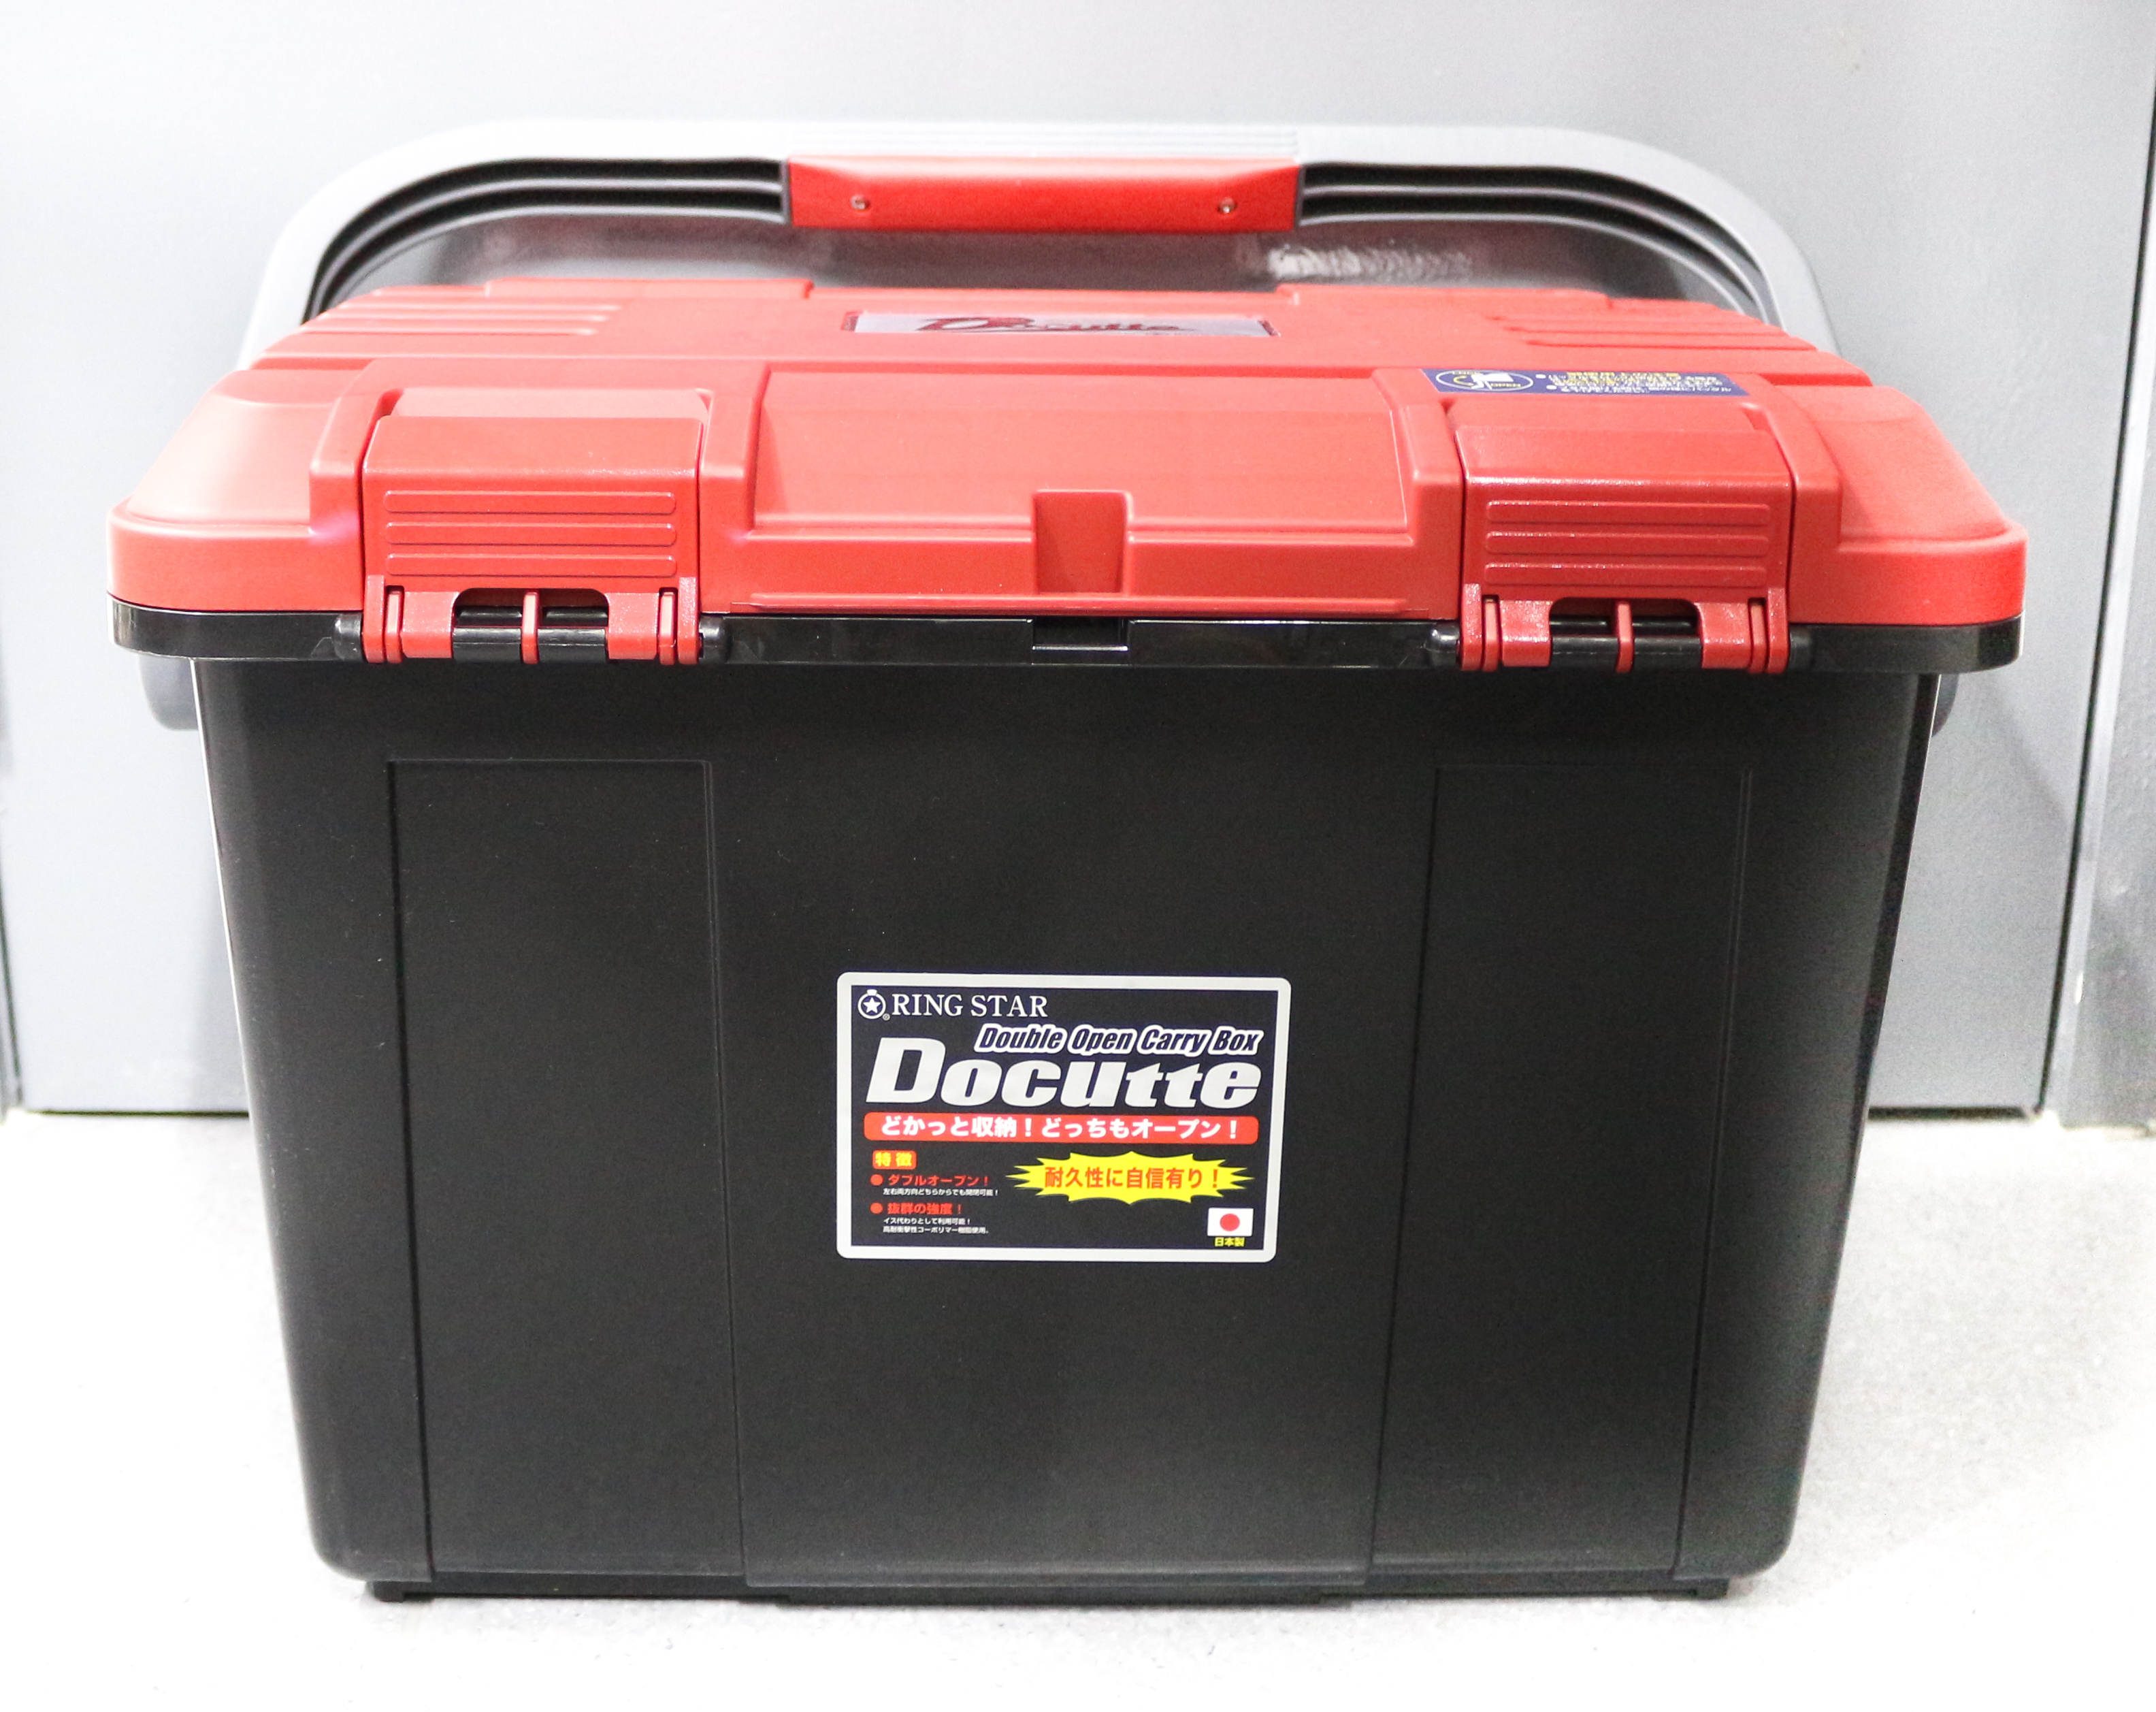 Ring Star Docutte D-5000 RB Tackle Box 538 x 359 x 347 mm Red Blk (7374)